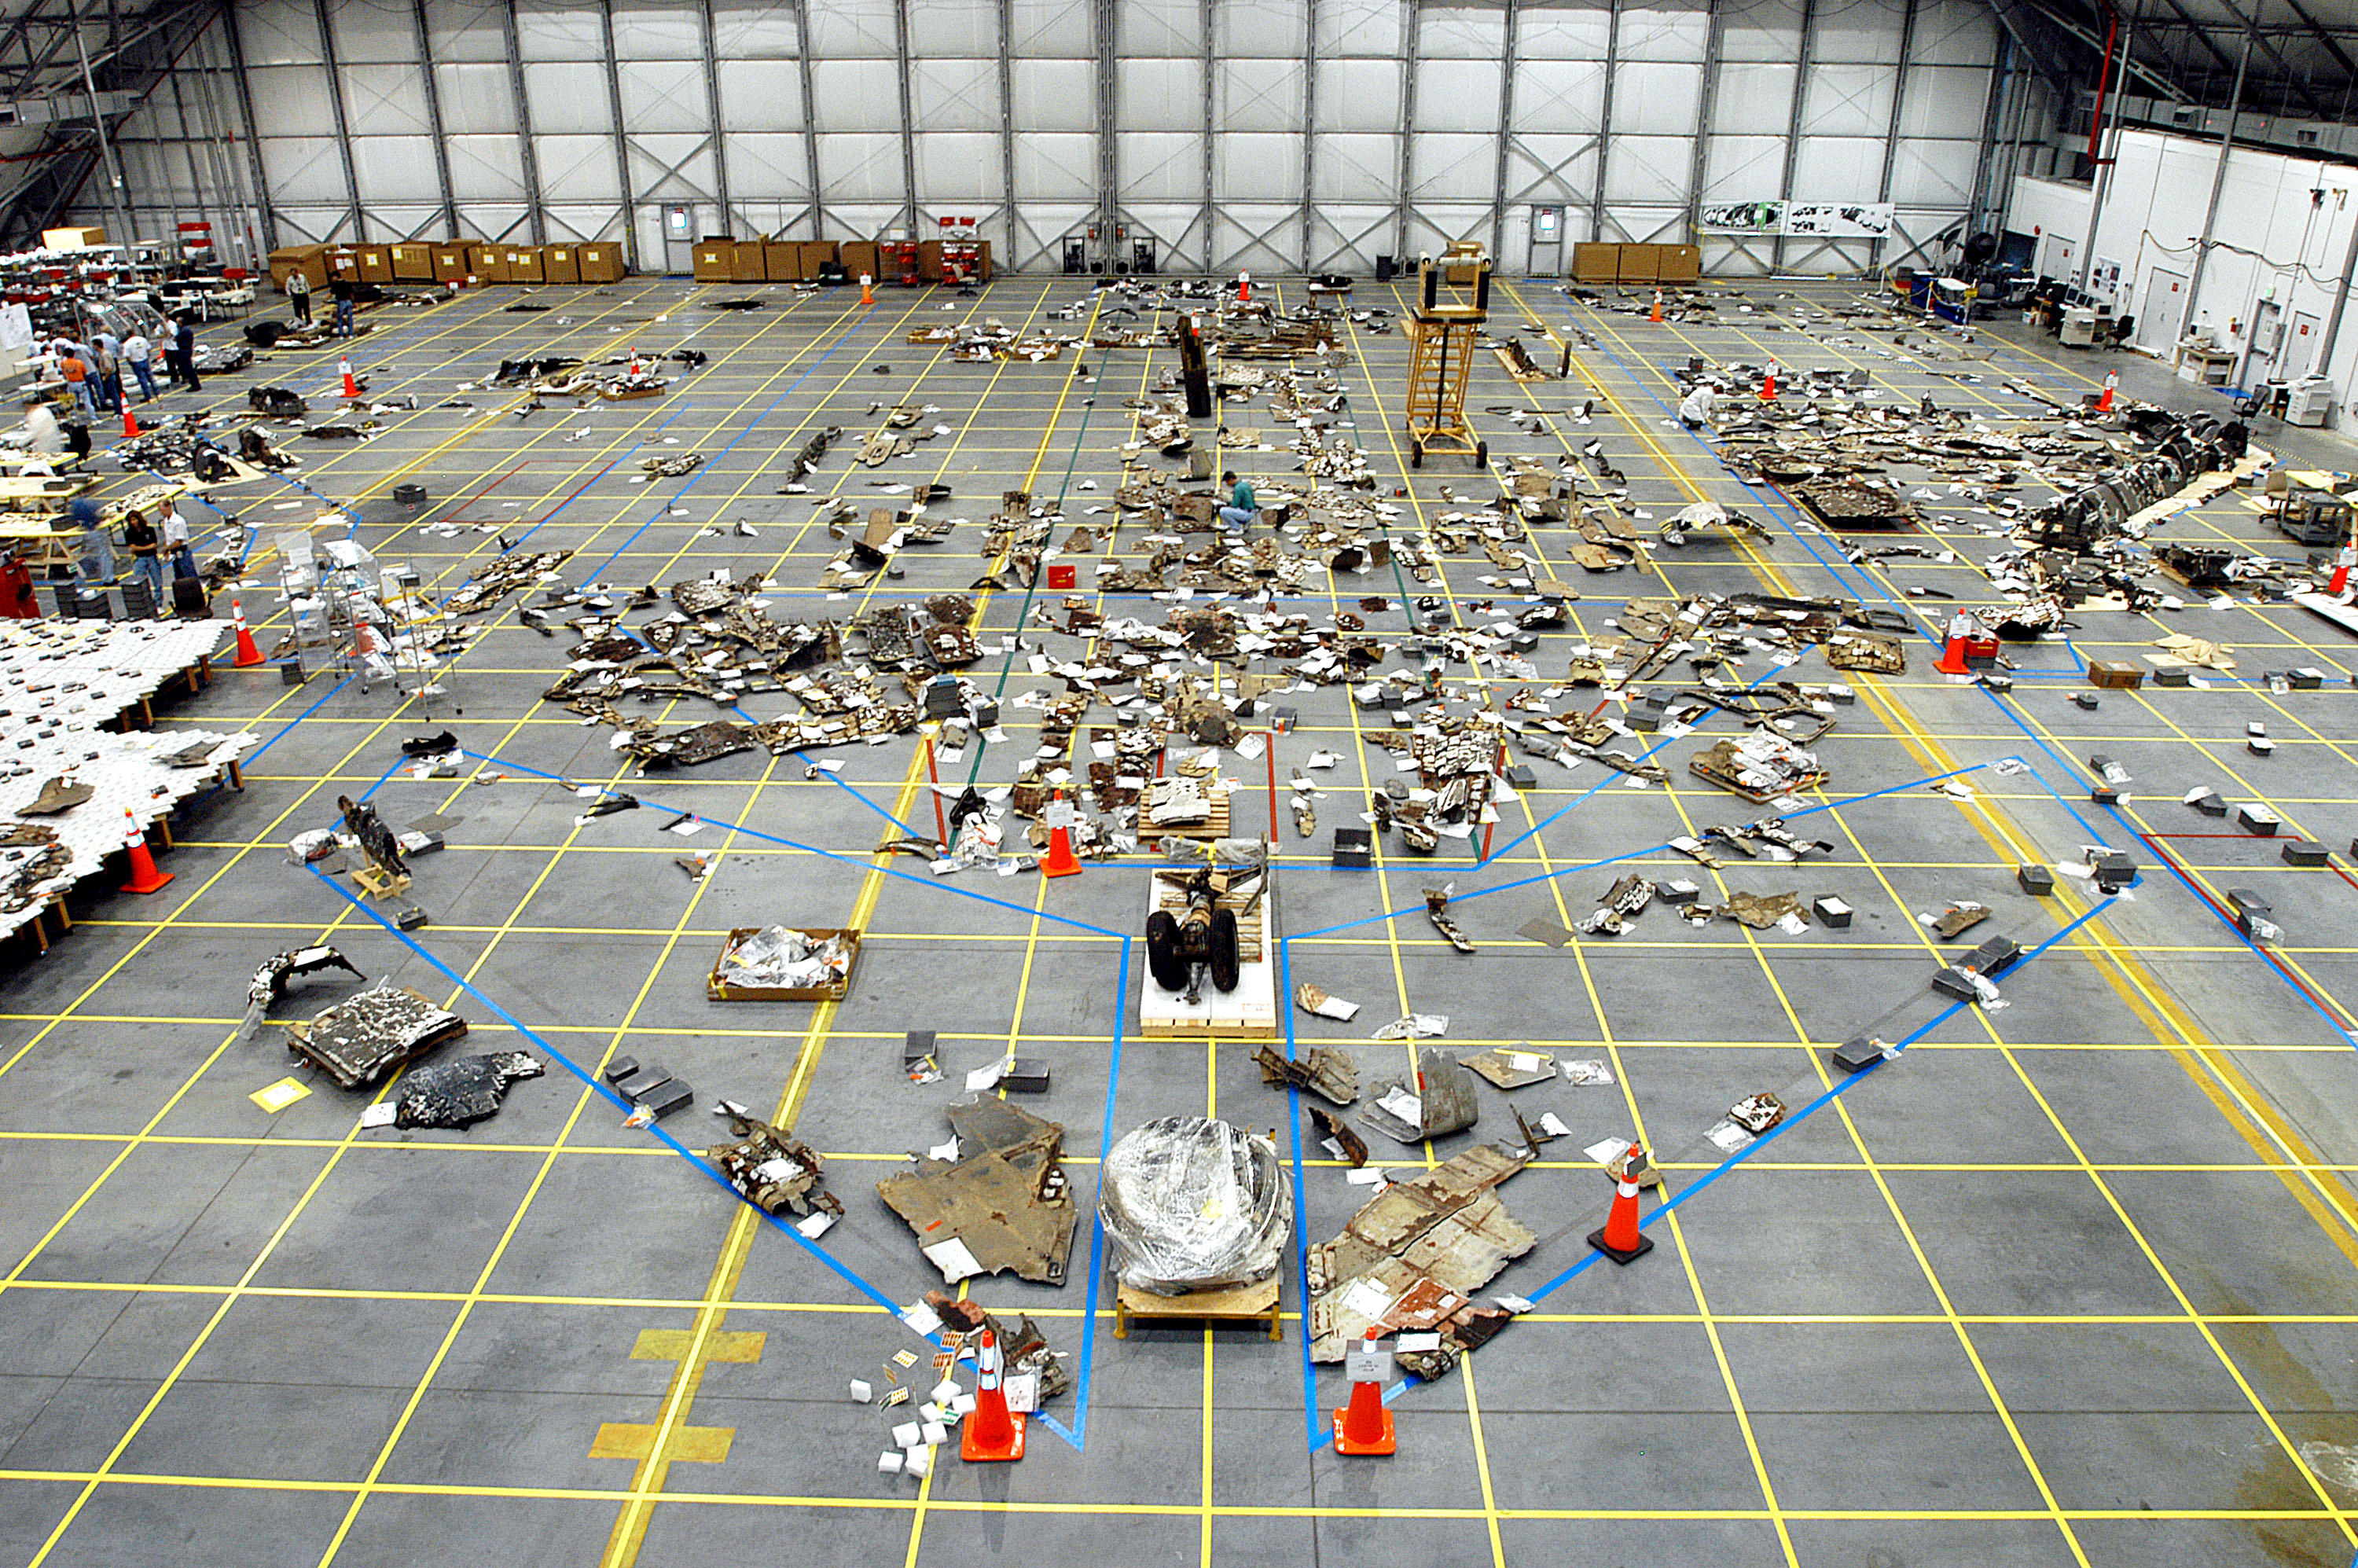 2003 space shuttle columbia bodies - photo #26